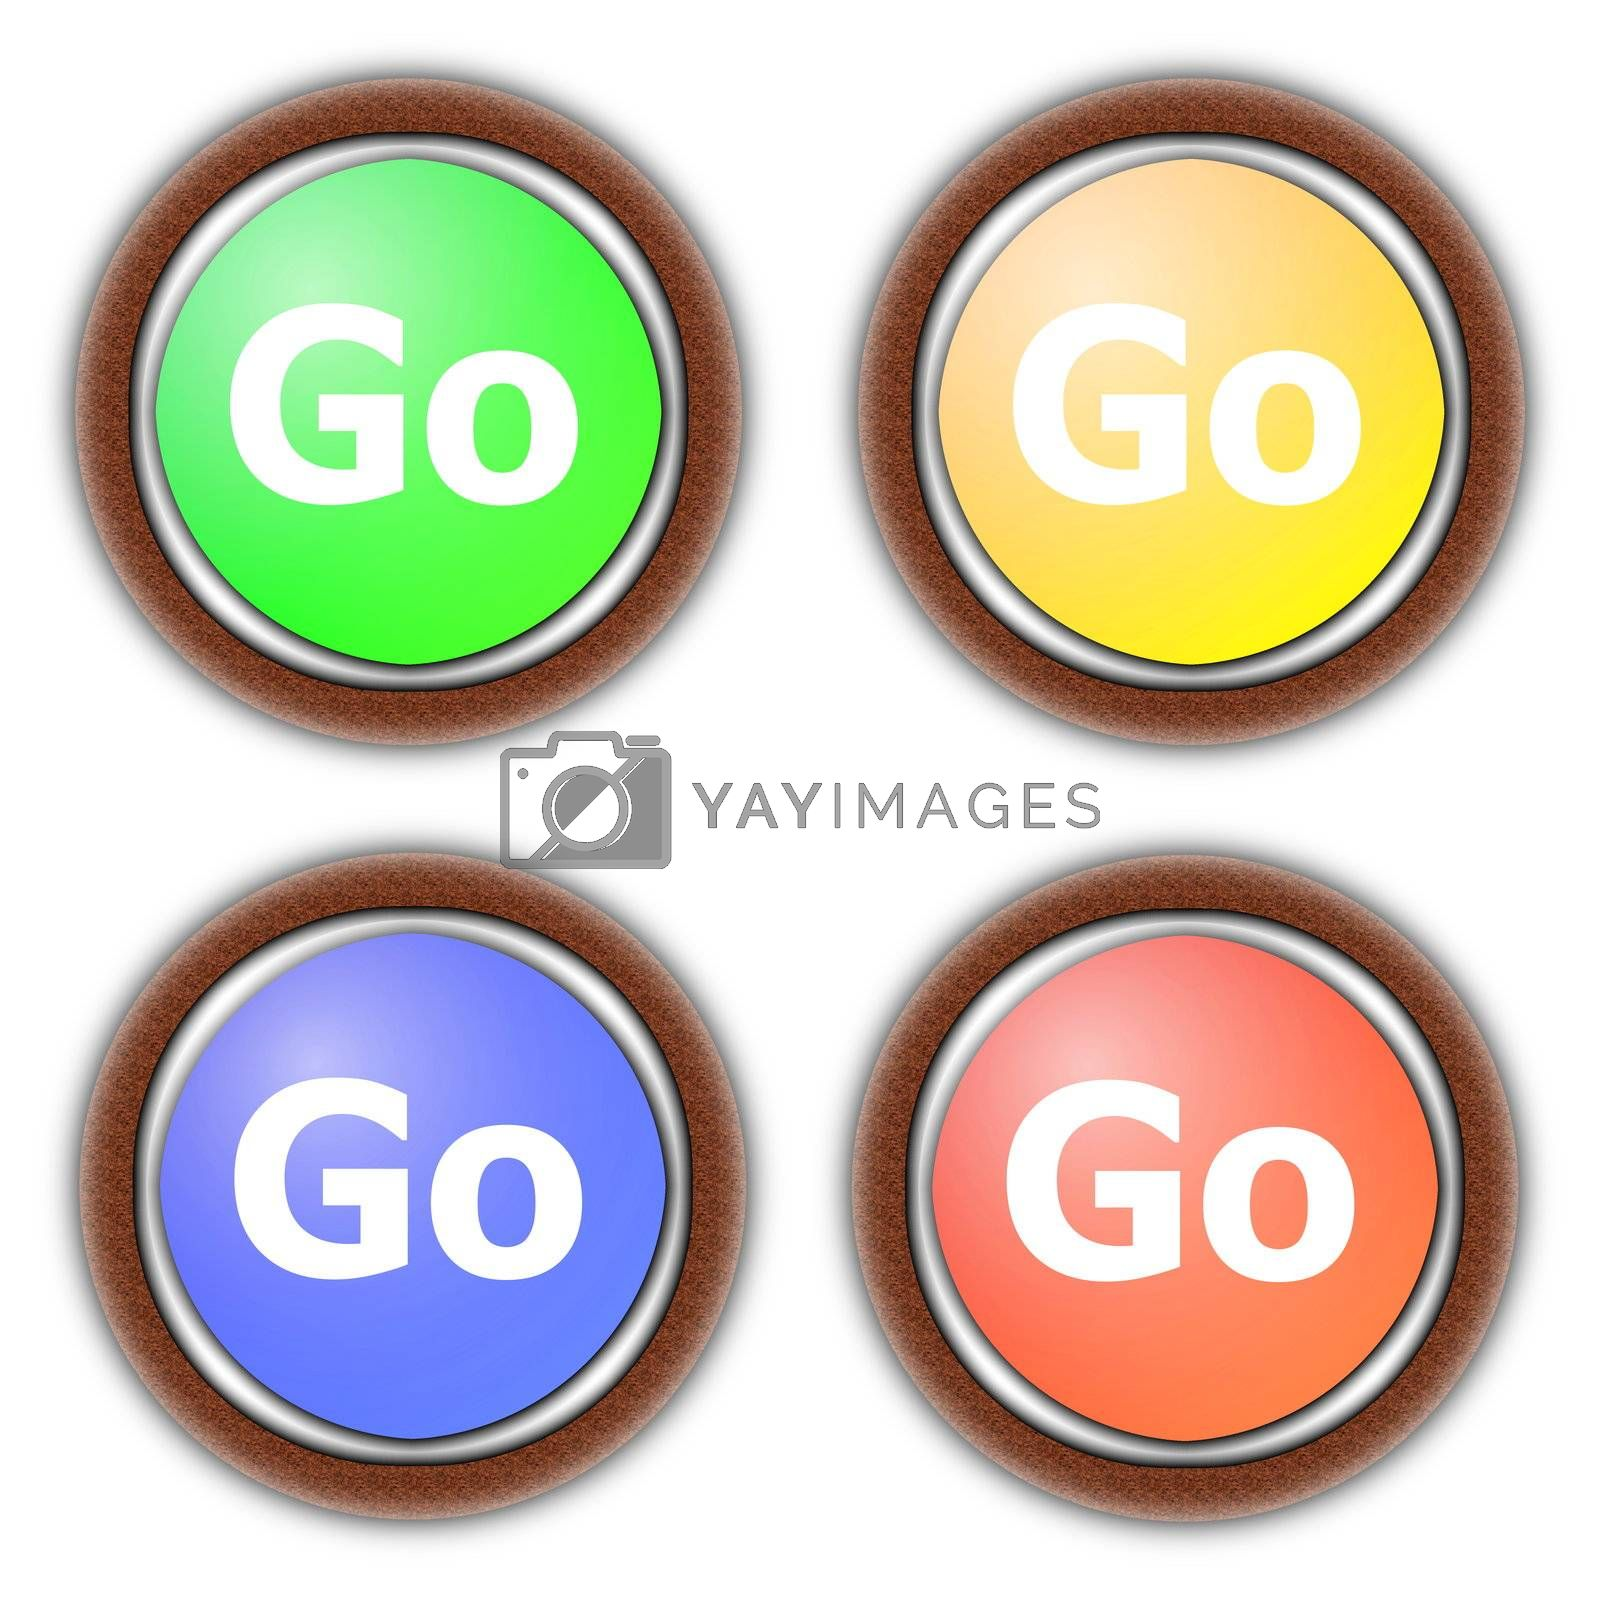 Royalty free image of go button collection by gunnar3000